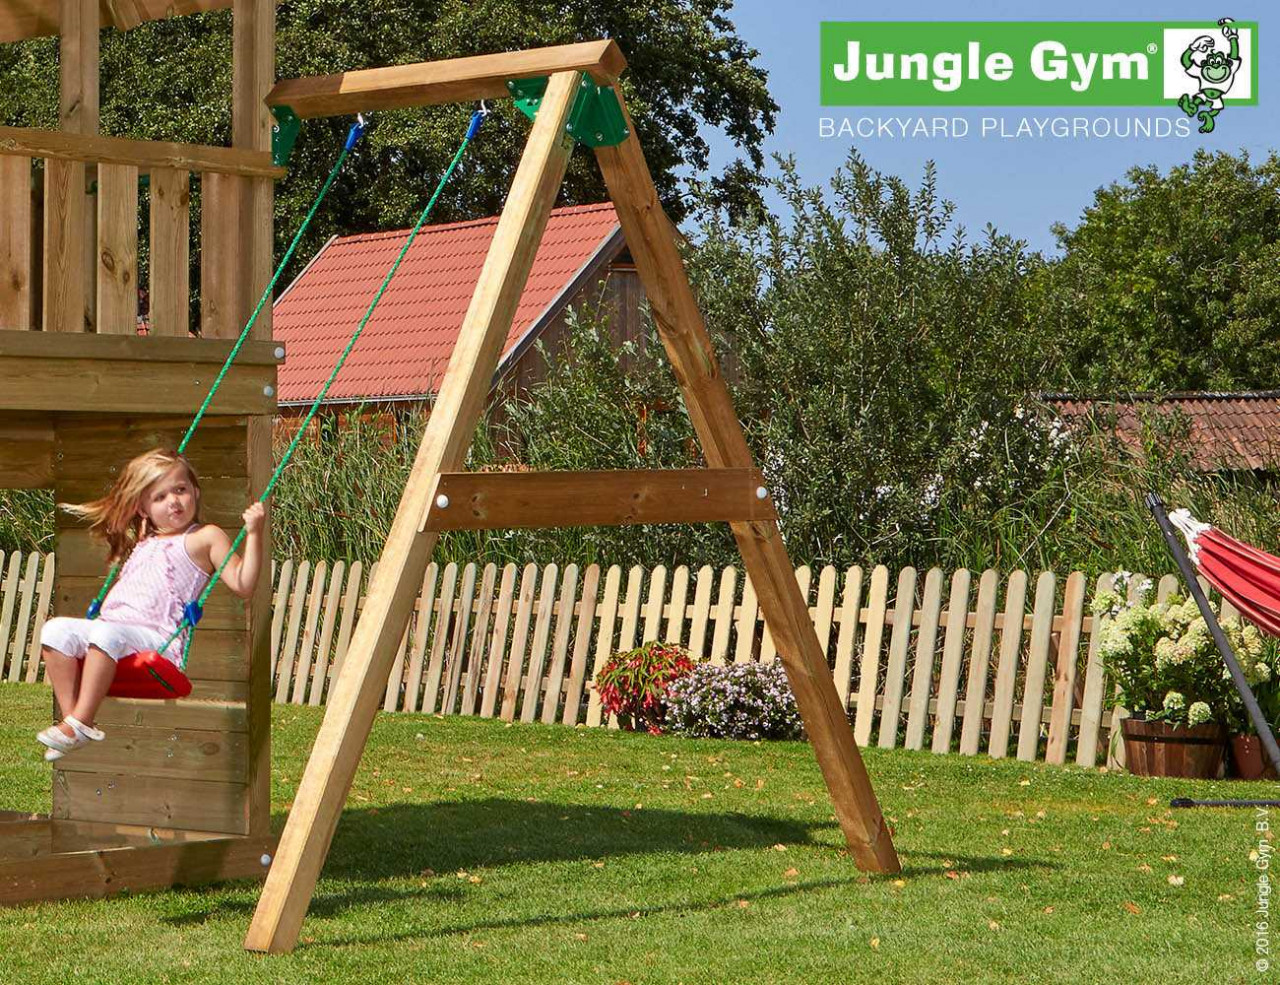 Anbauschaukel Jungle Gym 1-Schaukel-Modul in Douglasie natur